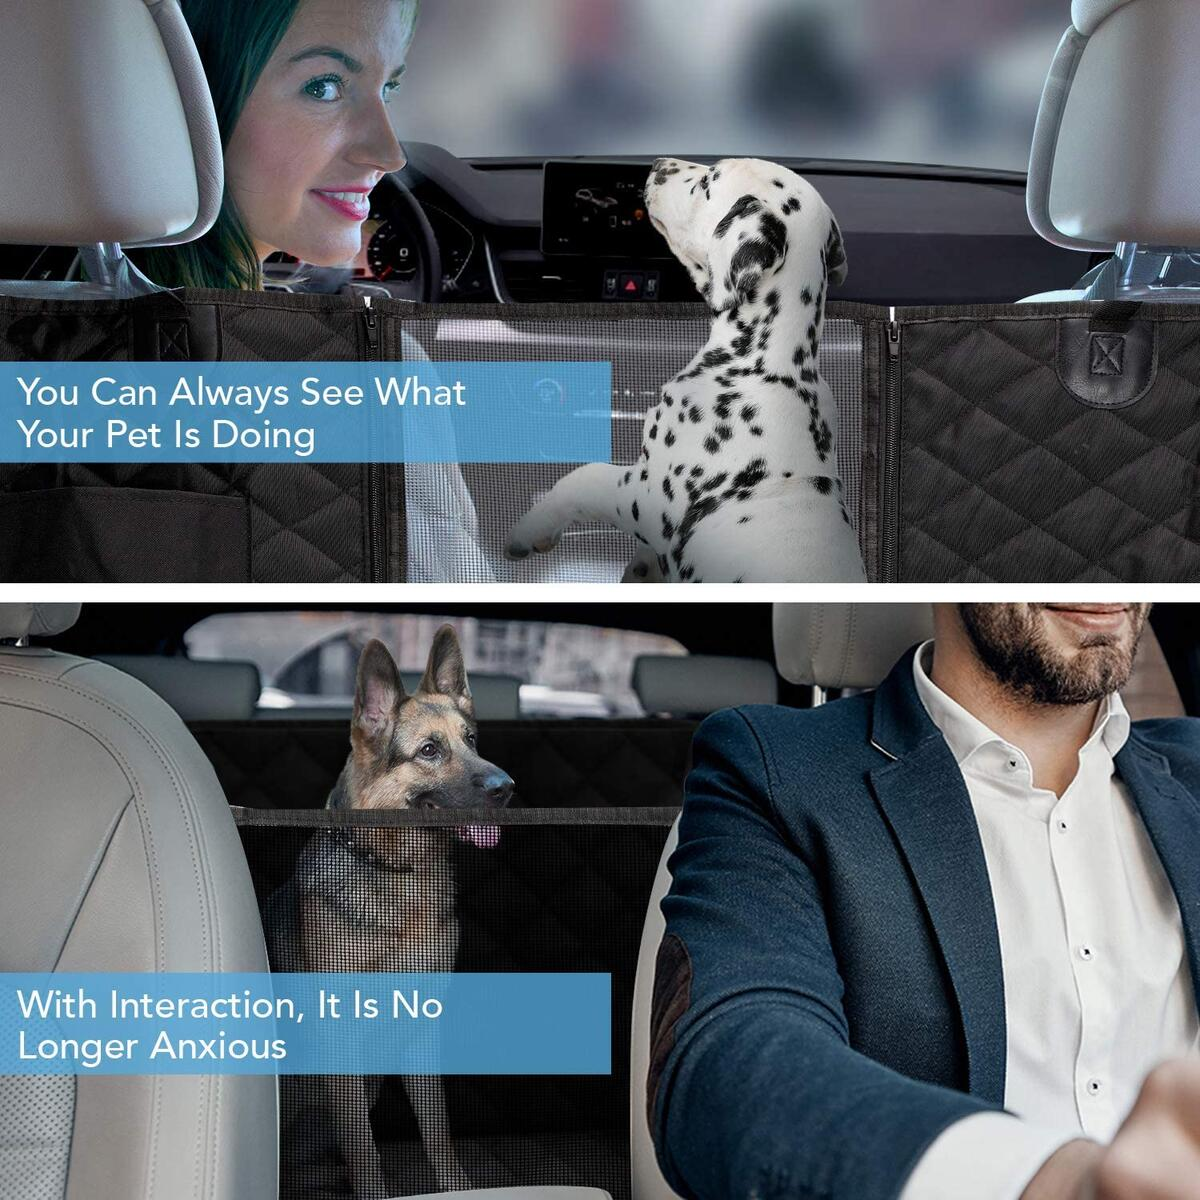 HOUSE DAY Dog Back Seat Cover Protector 900D with Mesh Viewing Window & Storage Pocket, Waterproof Non-Scratch Dog Car Hammock for Backseat Protection,Pet Car Seat Covers for Cars Trucks SUV